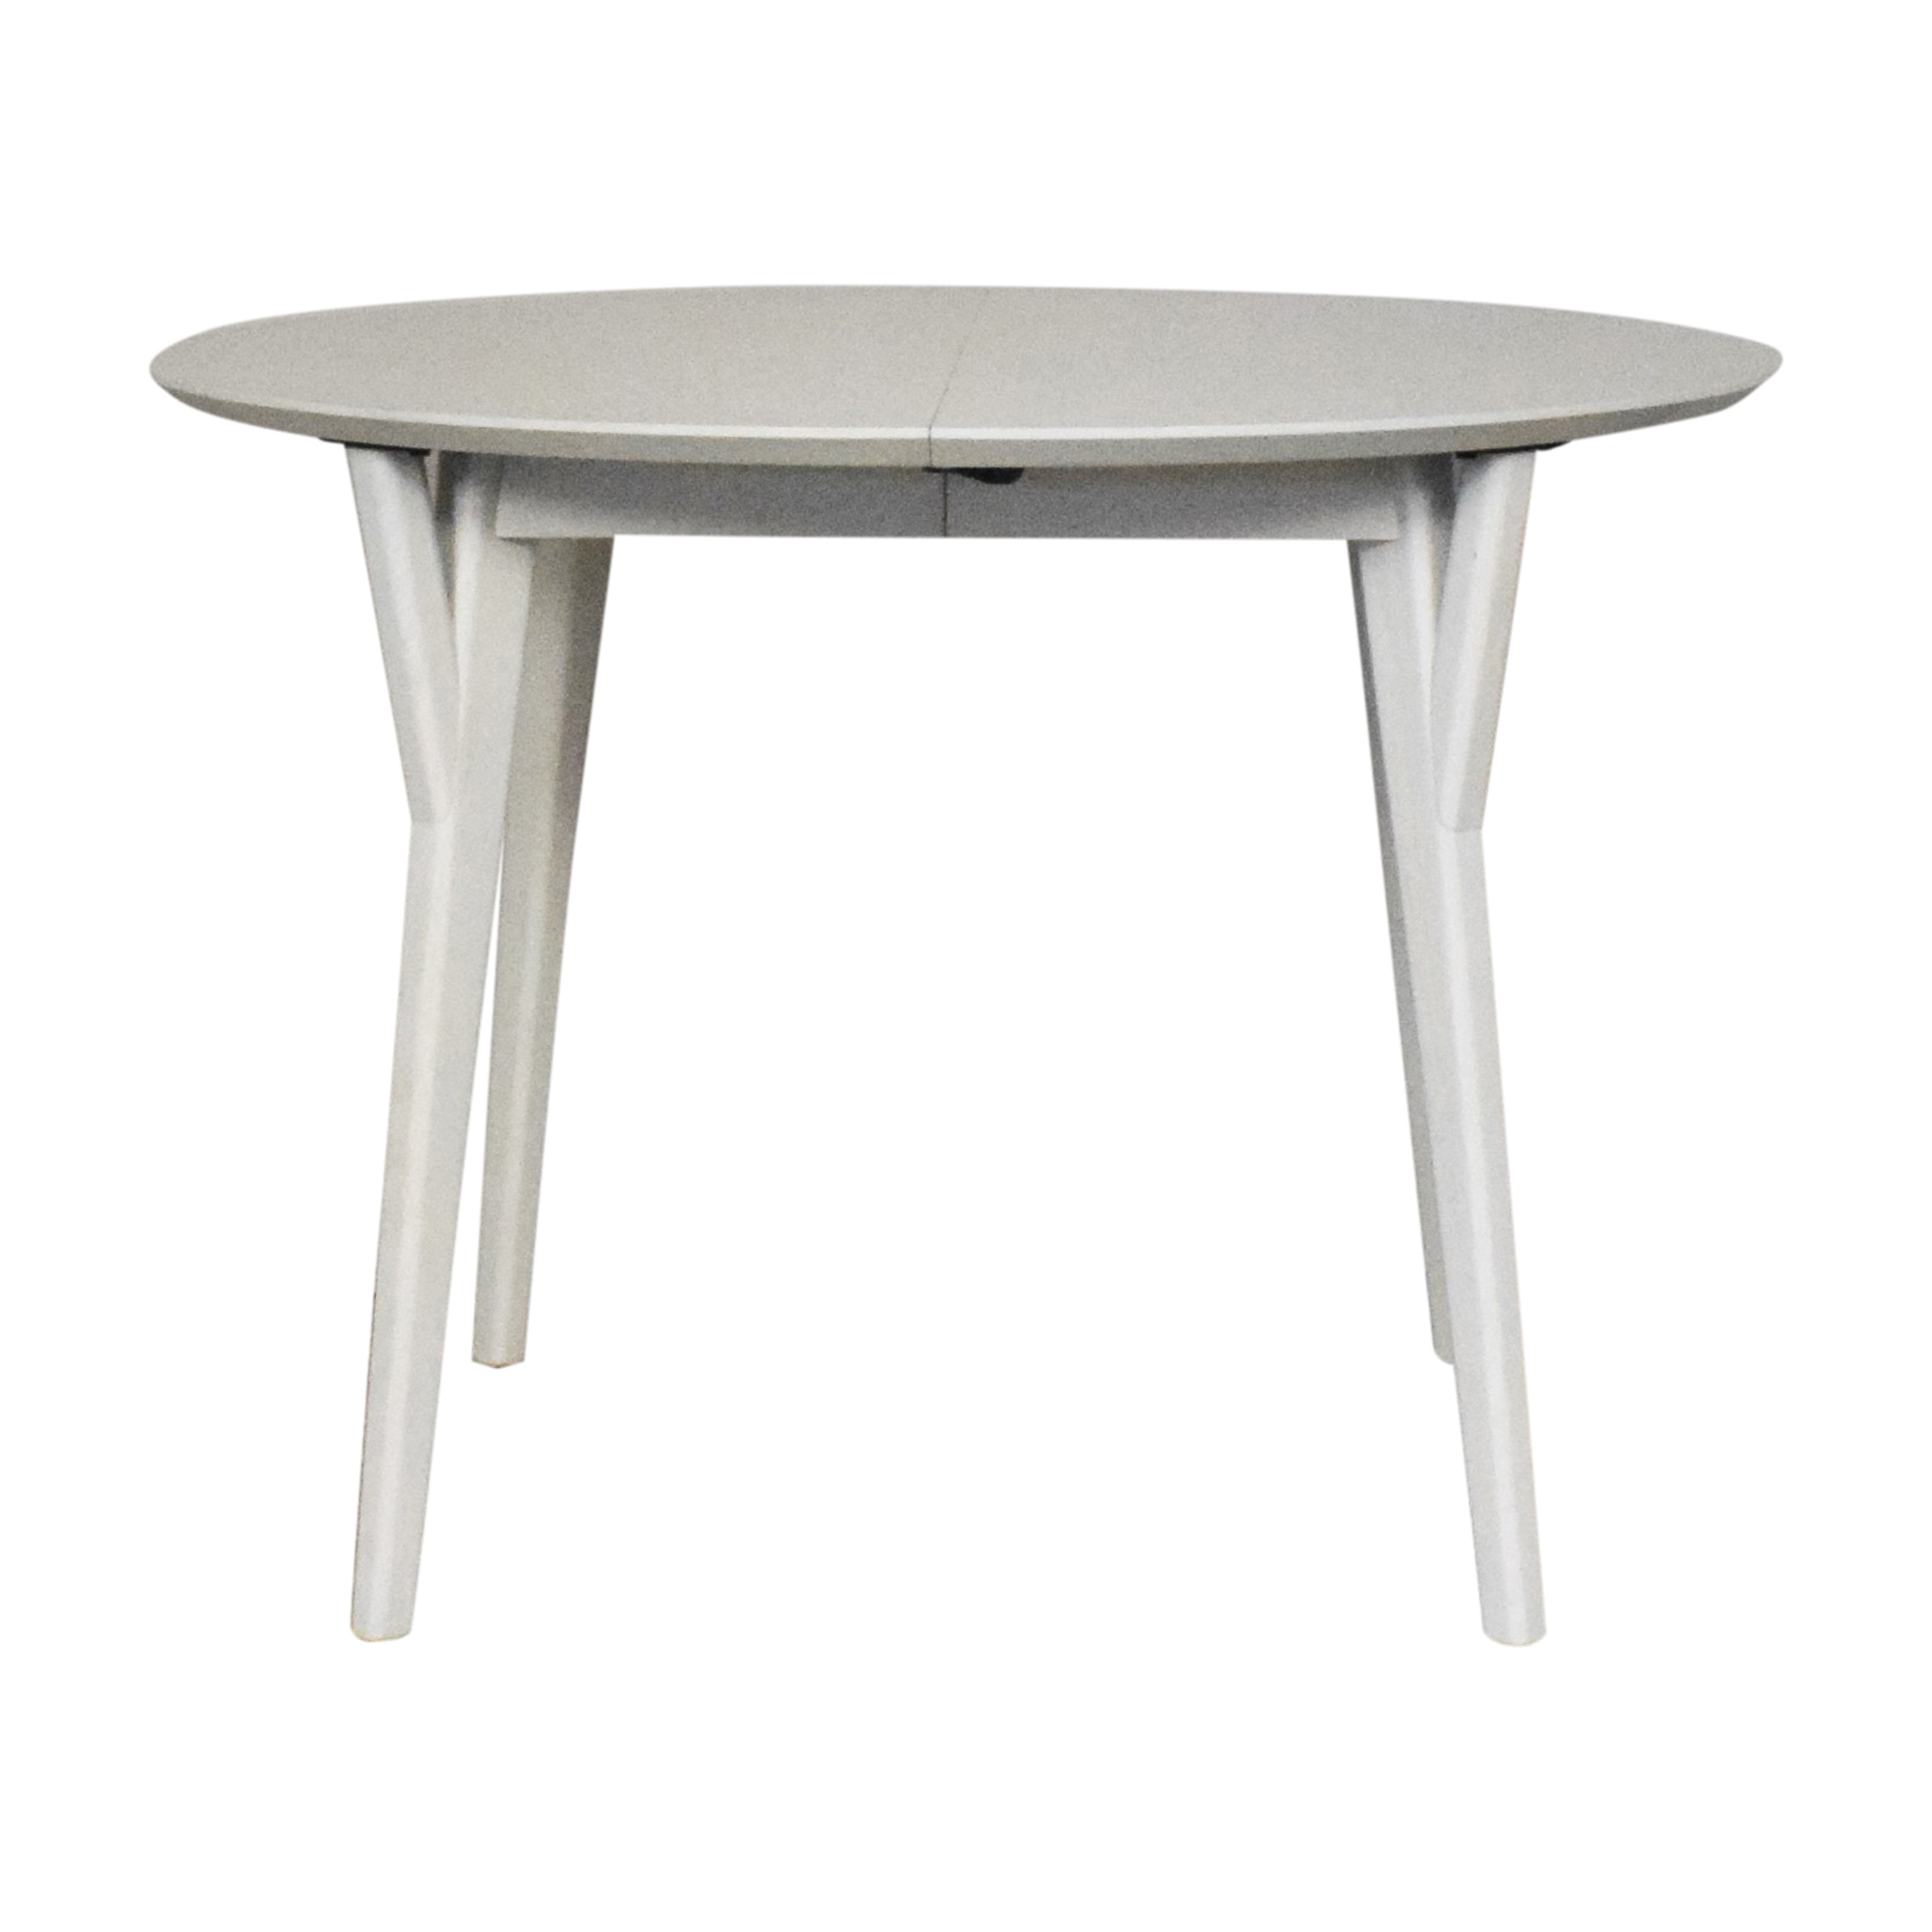 West Elm West Elm Mid Century Round Expandable Dining Table on sale